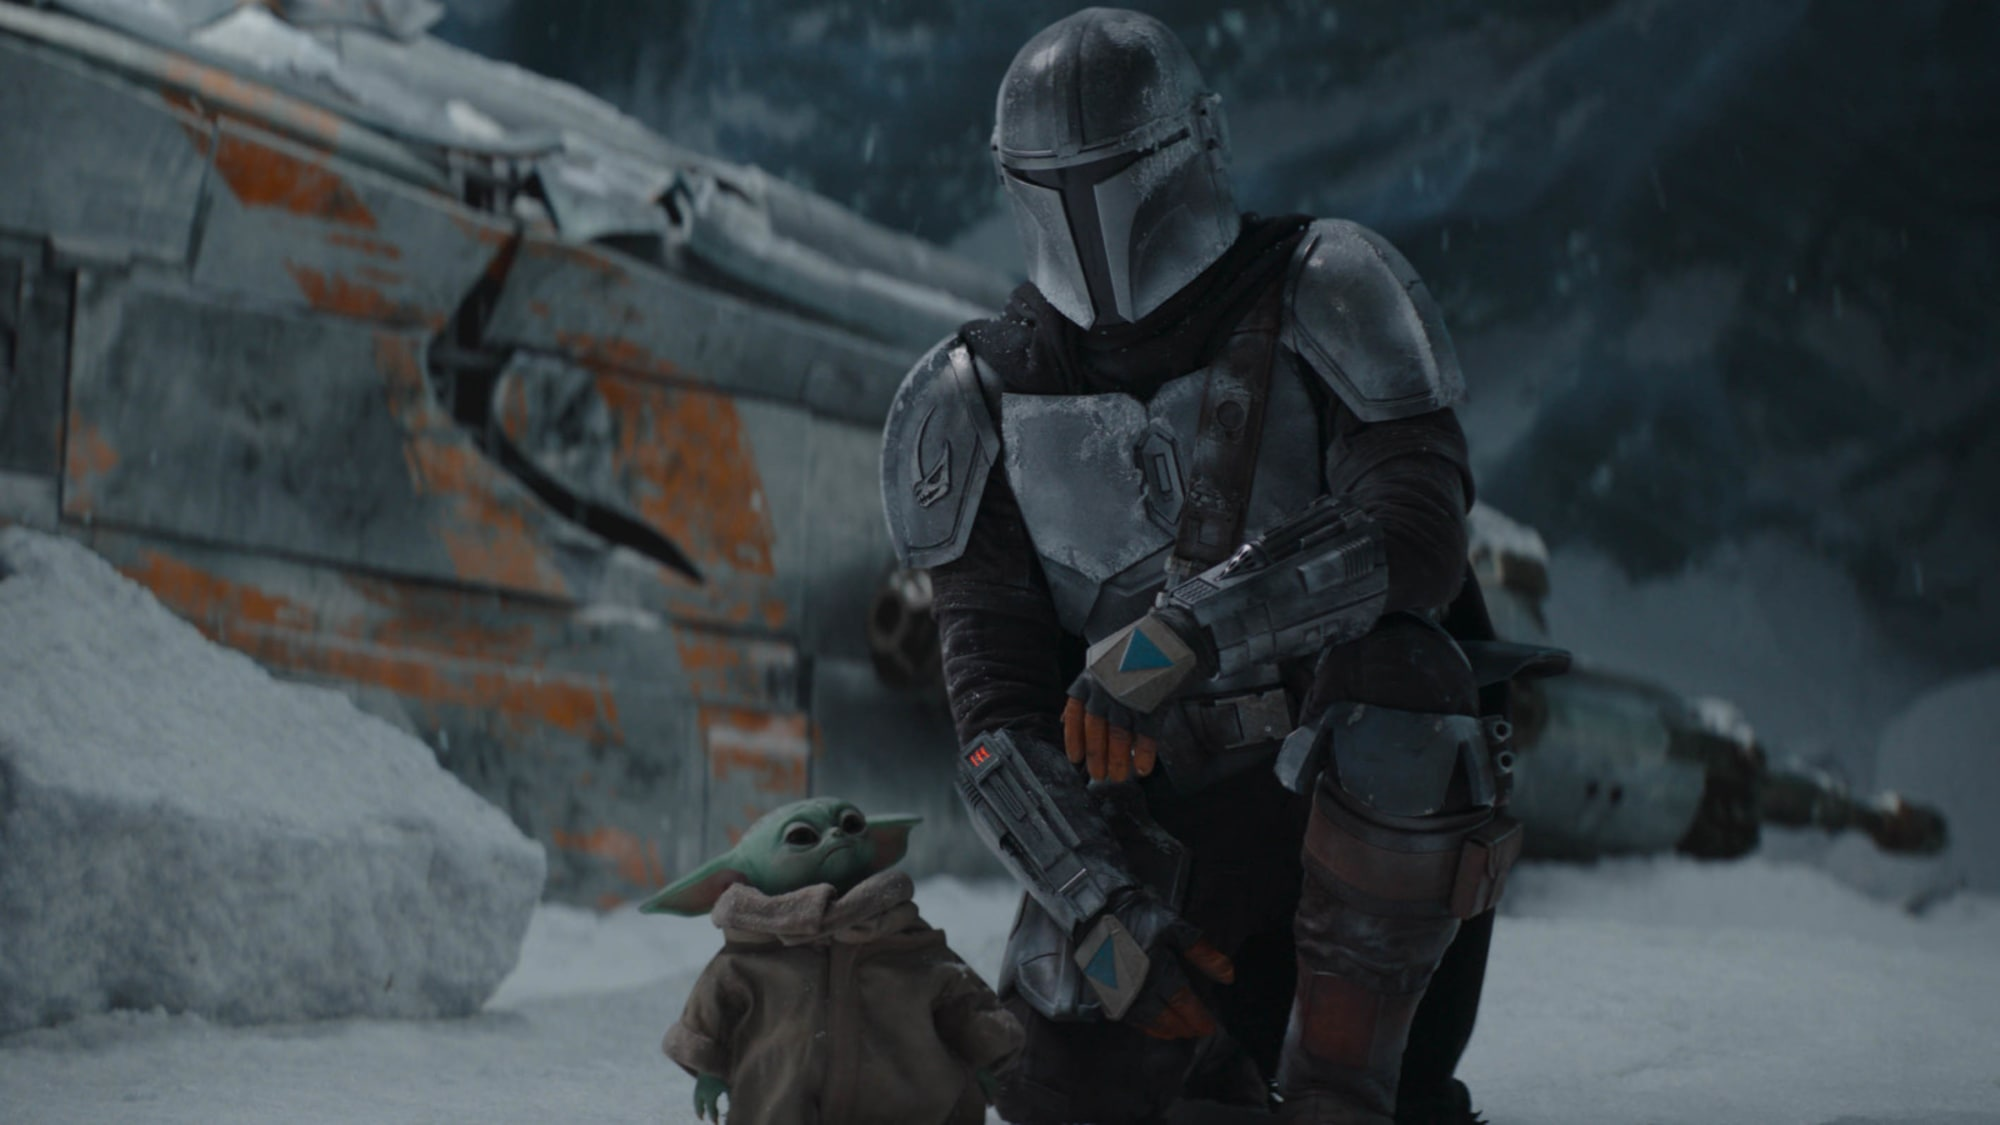 Should the Mandalorian just adopt The Child?